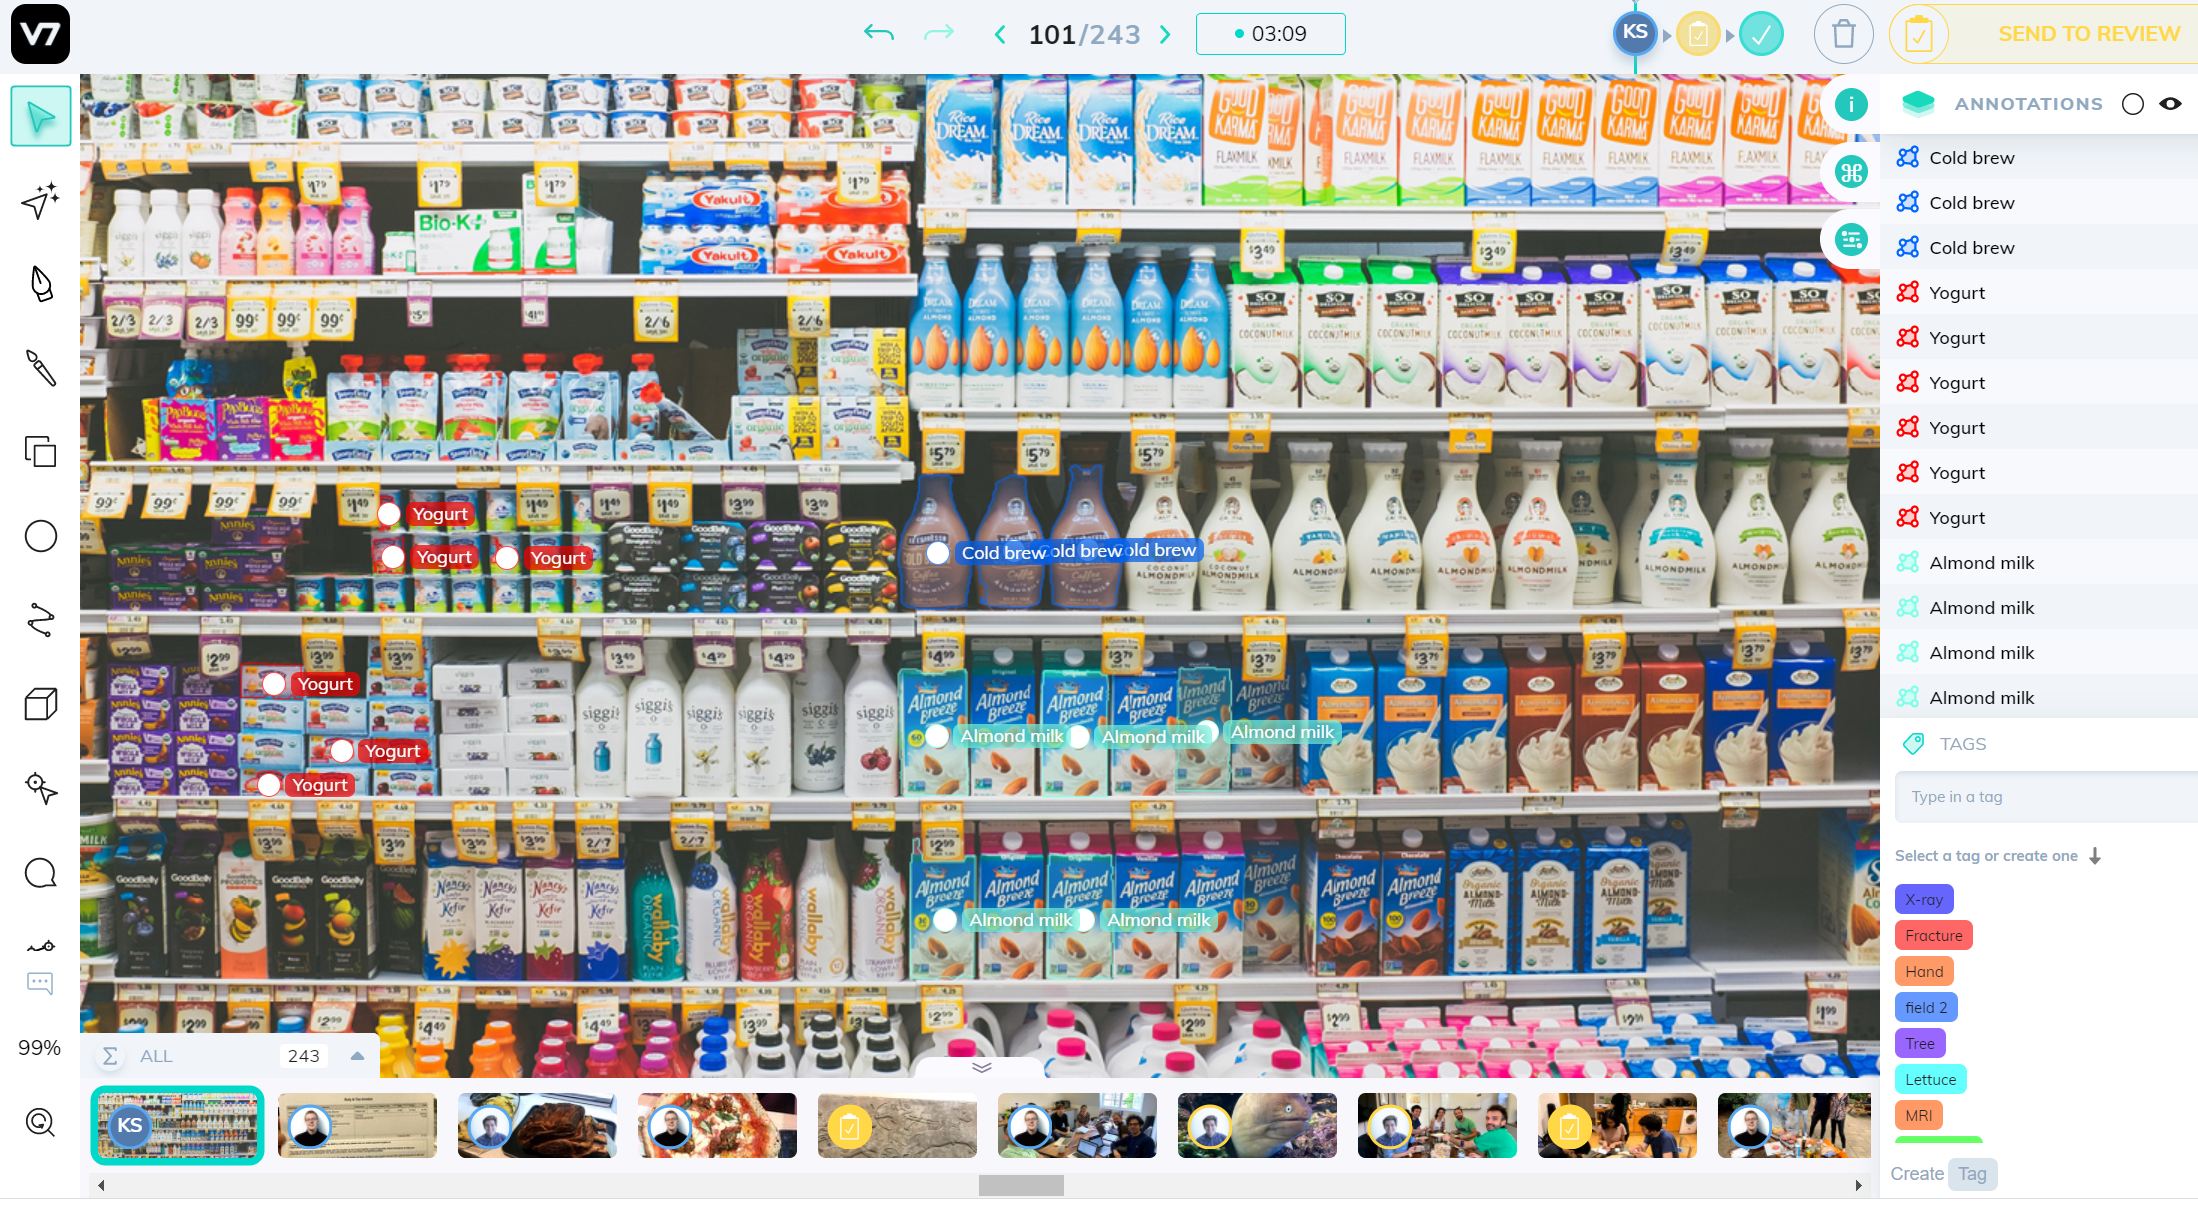 computer vision for retail inventory management